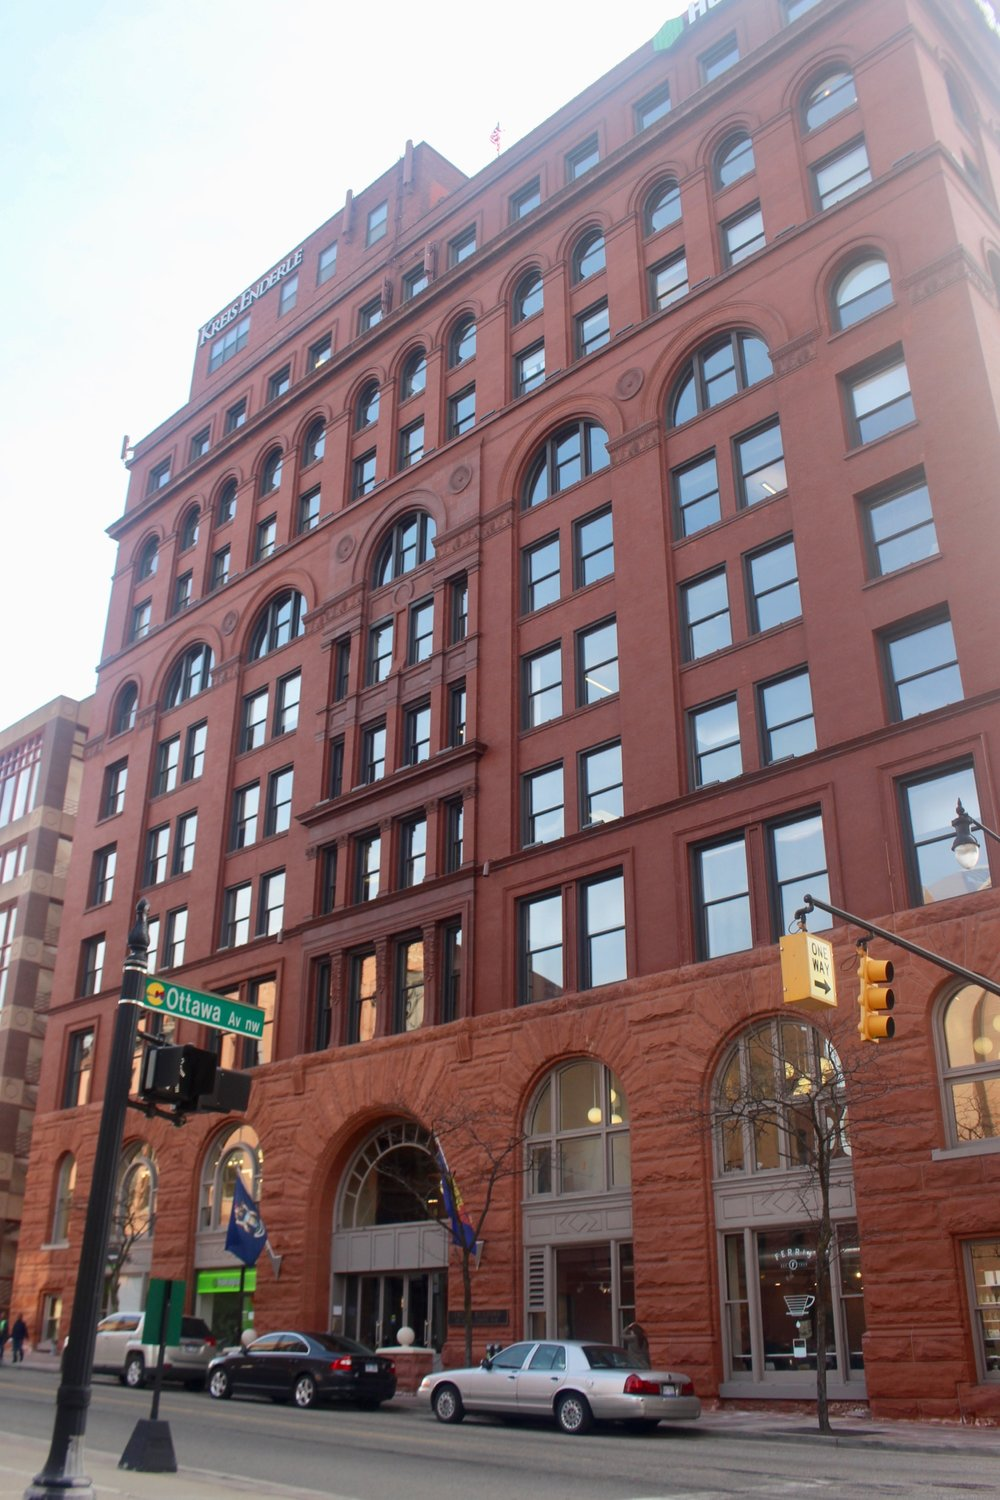 40 PEARL STREET NW | MICHIGAN TRUST BUILDING